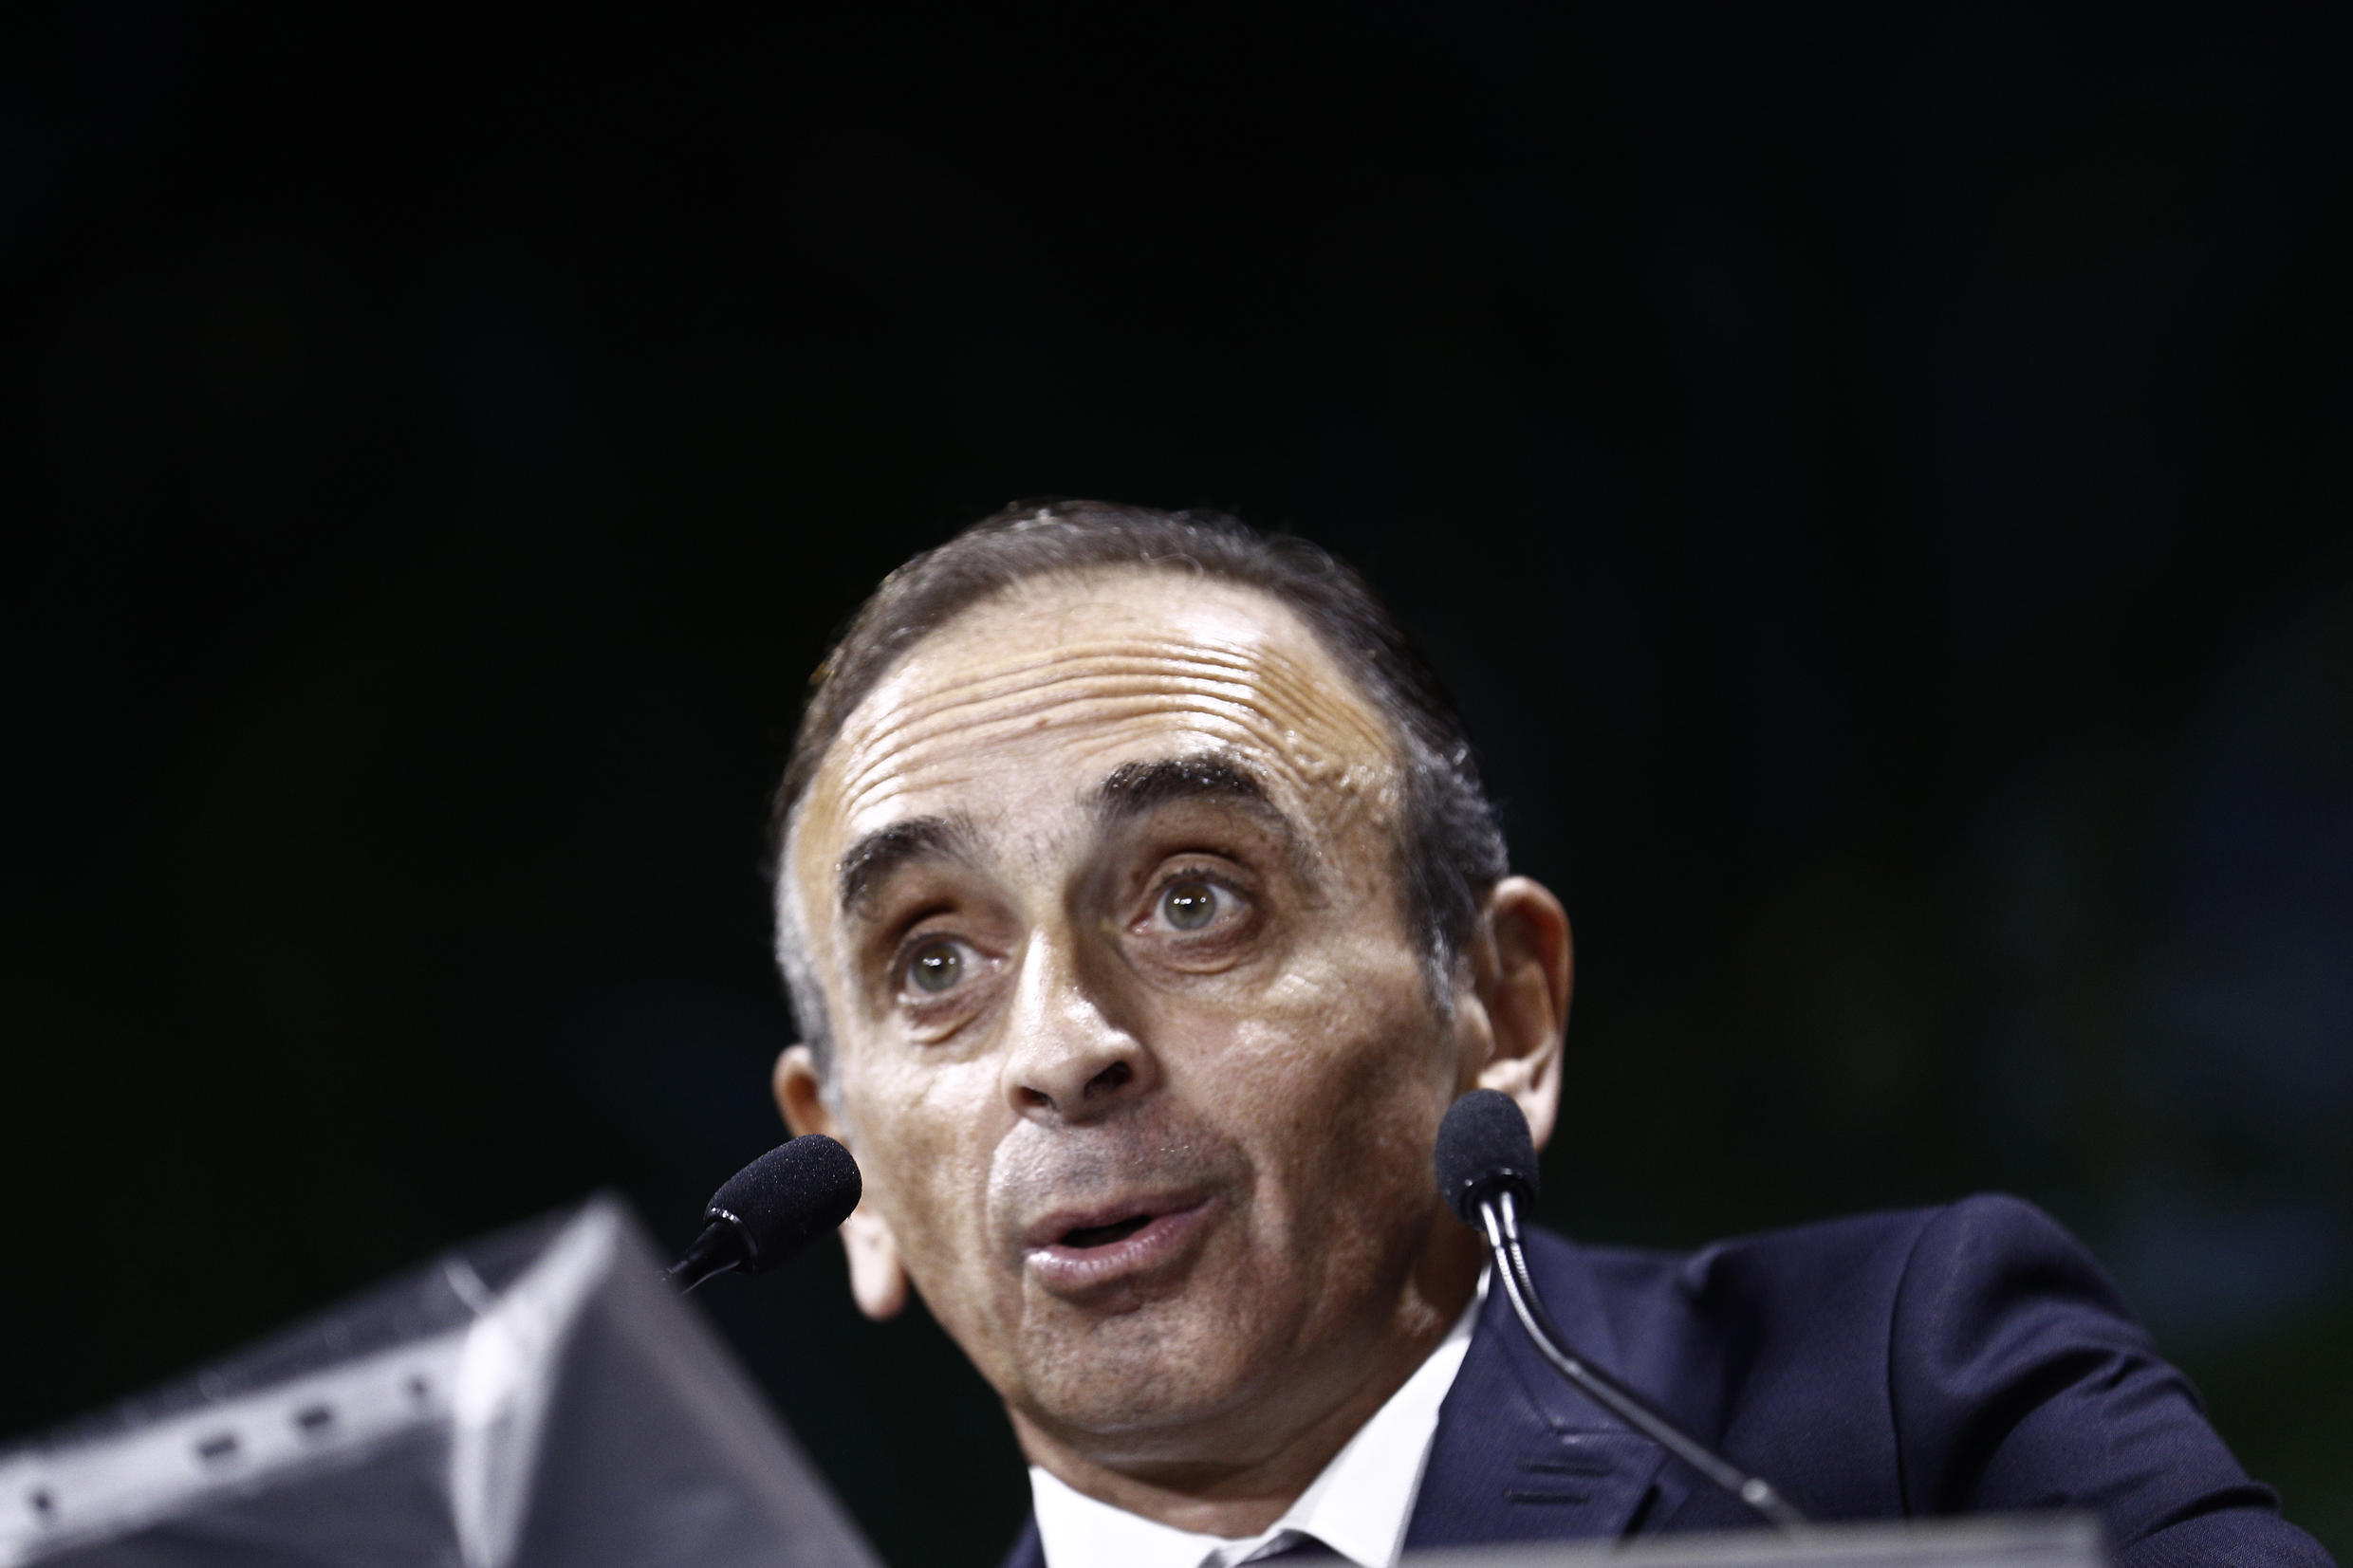 Eric Zemmour has convictions for racial and religious hate speech